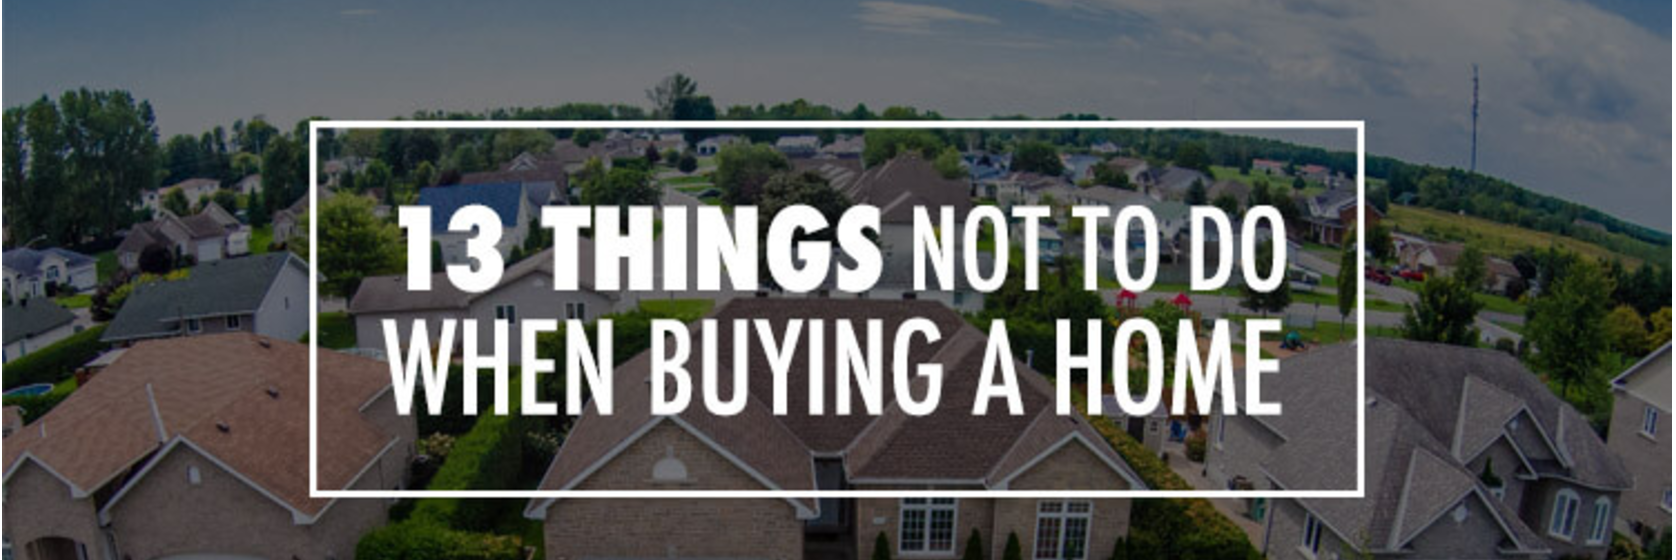 13 Things NOT TO DO When Buying A House